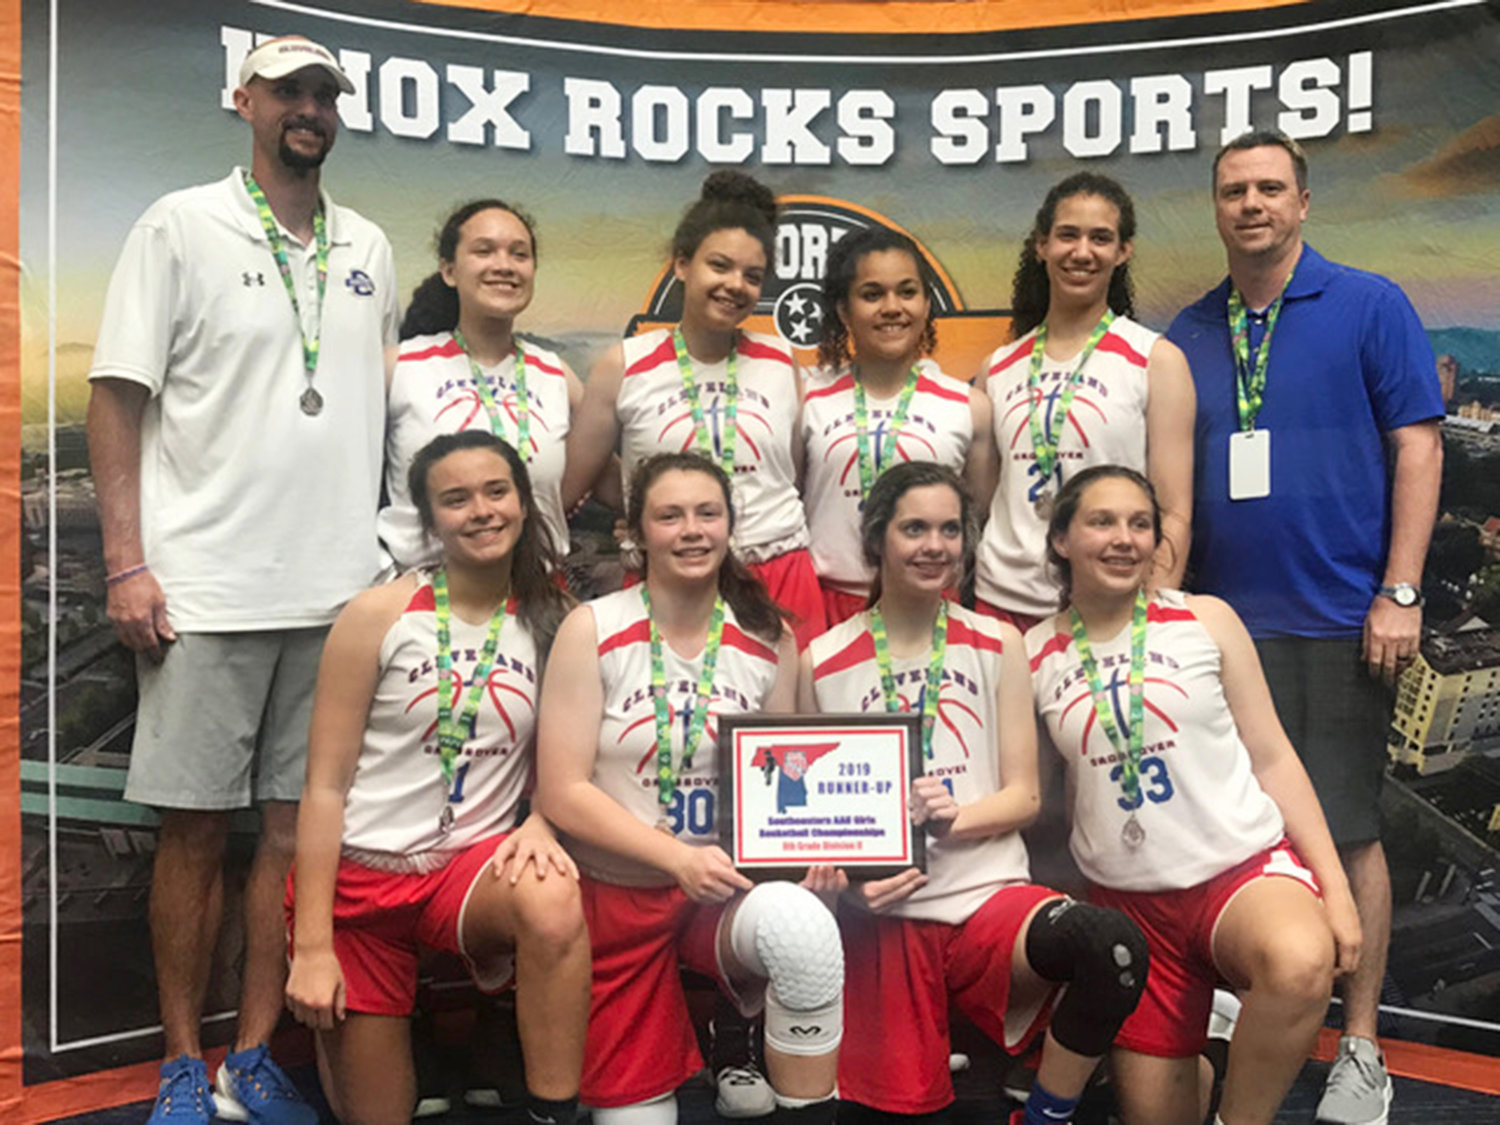 THE CLEVELAND CROSSOVER eighth-grade girls basketball team was runner-up in the 2019 Southeastern District AAU Girls Basketball Division II Championship last weekend in Knoxville, going 3-1 in bracket play. Front row, from left, Milah Williams, Dani Reeves, Paige Moody and Lily Brady. Back row, from left, Cleveland High School girls head coach Tony Williams, Neveah Hjulberg, Alayna Johnson, Emery Arnwine, Jaydin Lee and assistant coach Clay Moody. Not pictured is Tyria Tanner.